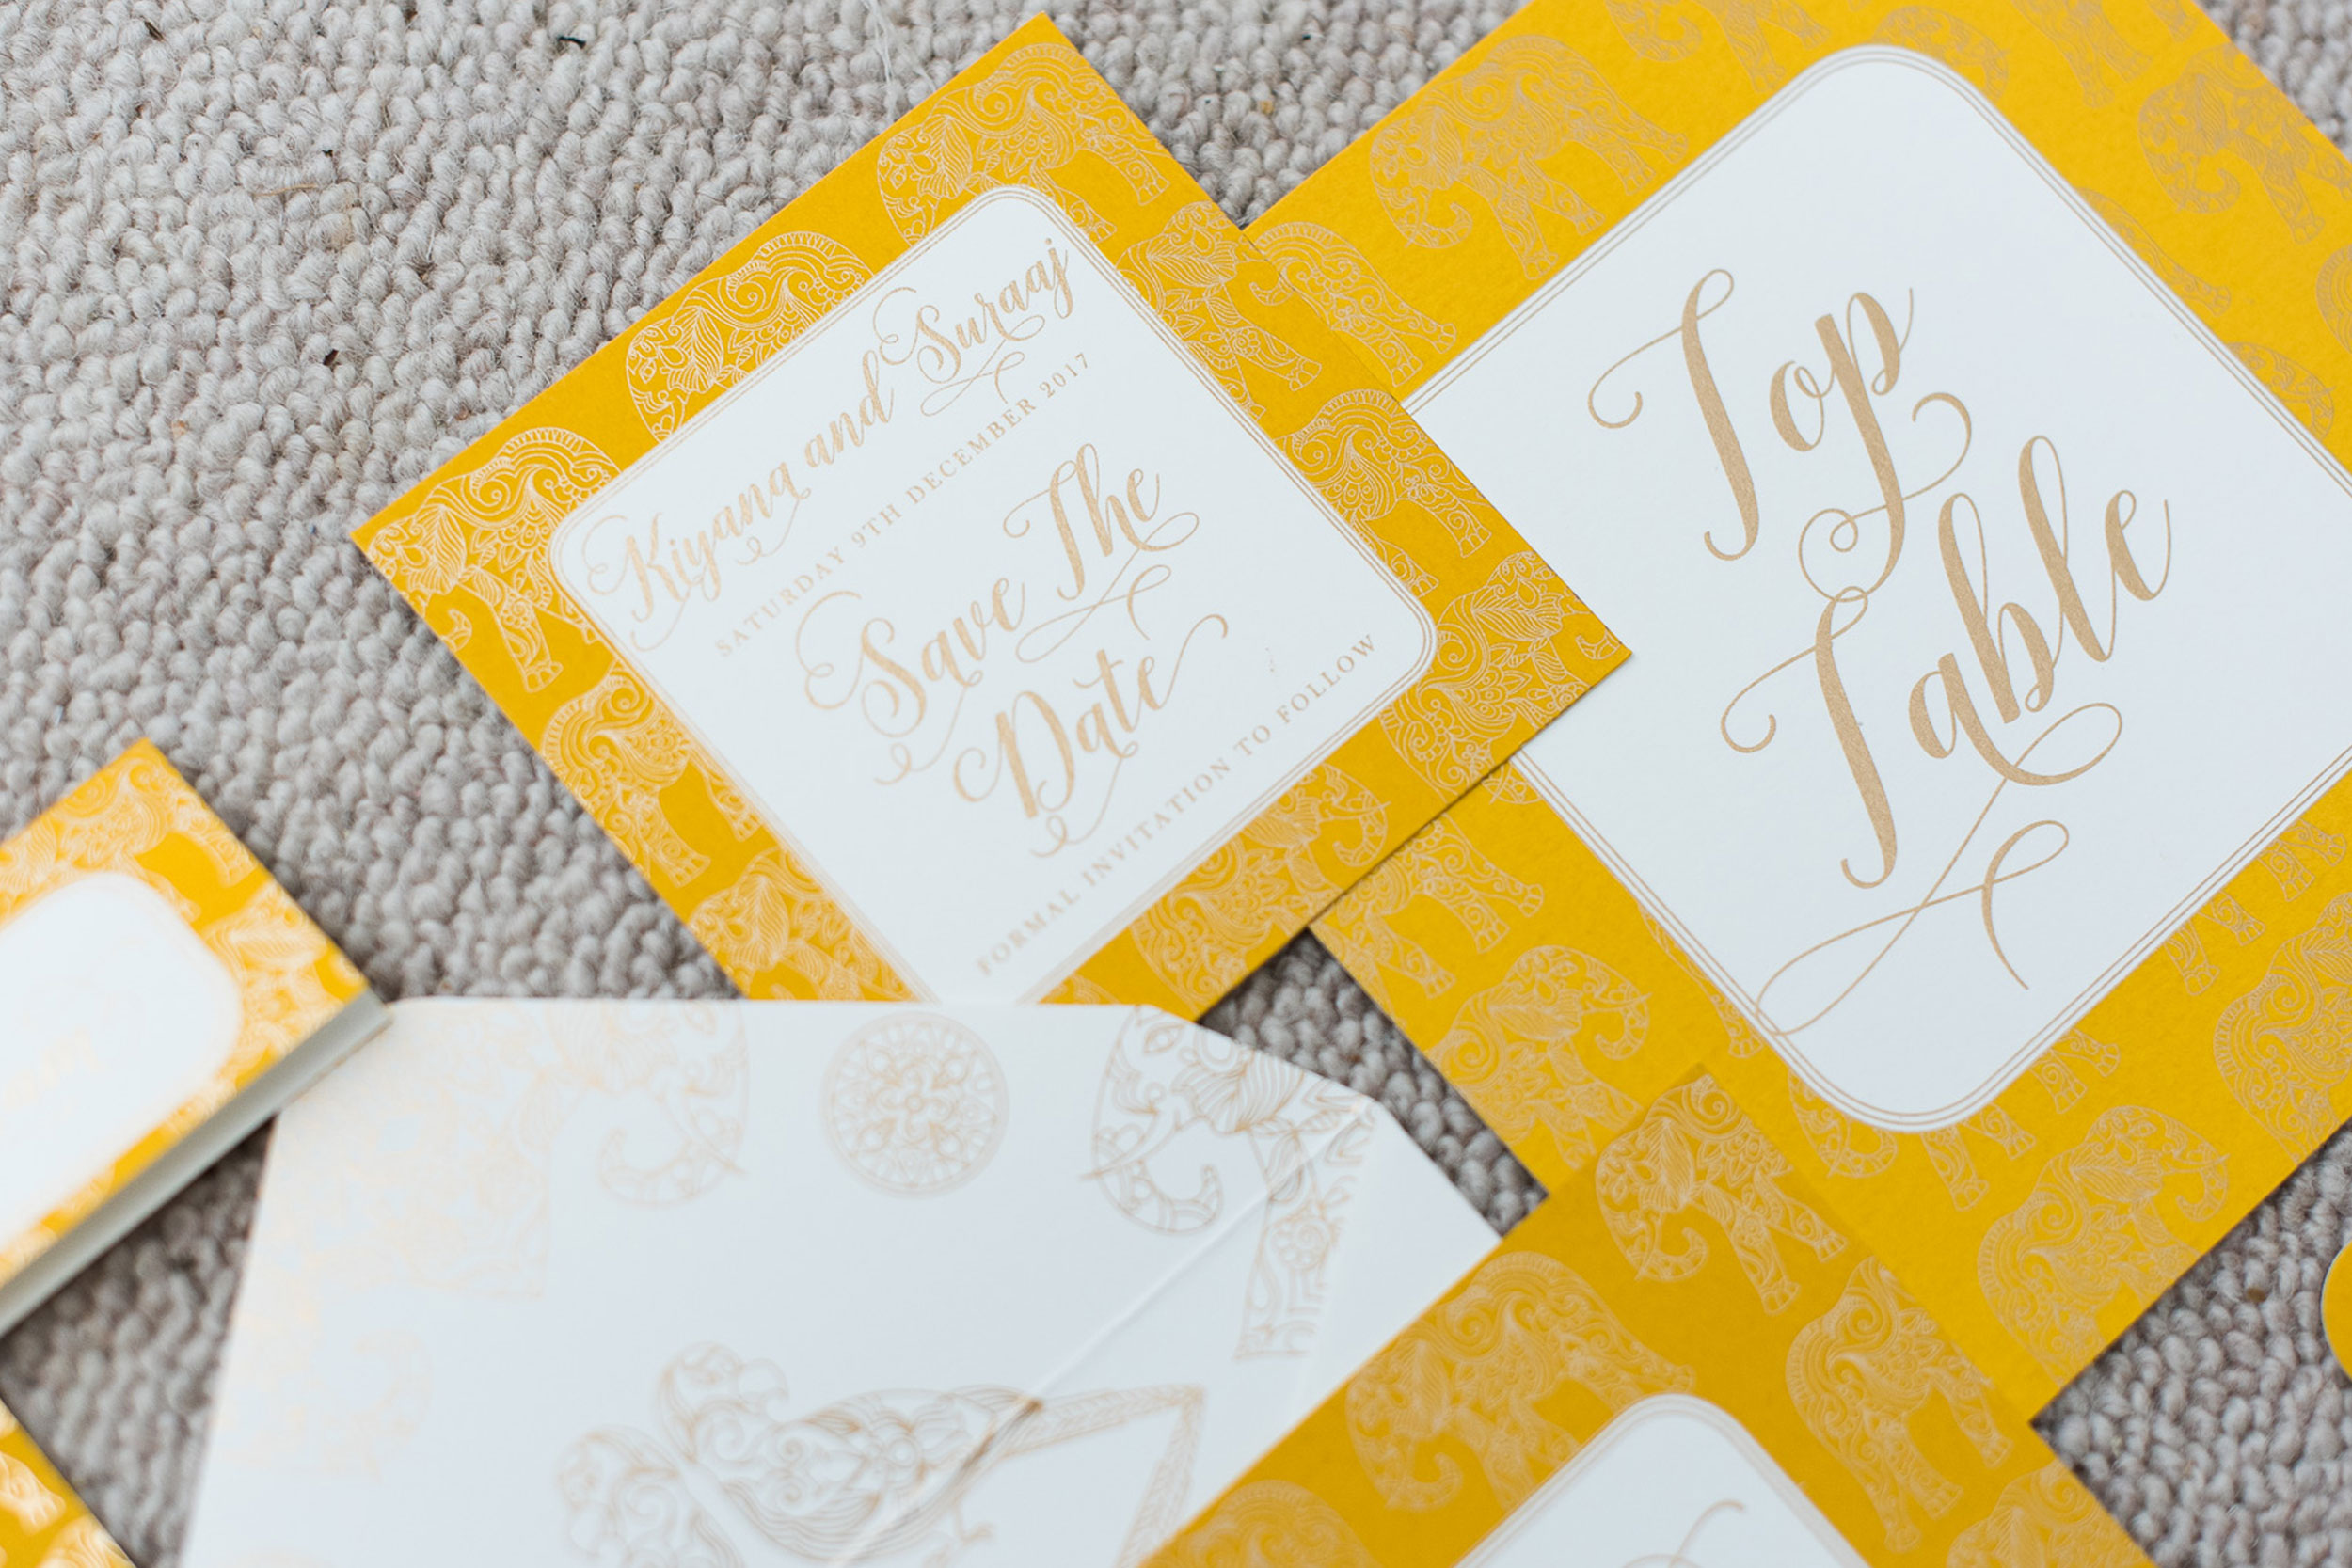 trio-of-life-gold-elephant-save-the-date-and-table-number-wedding-invitation.jpg